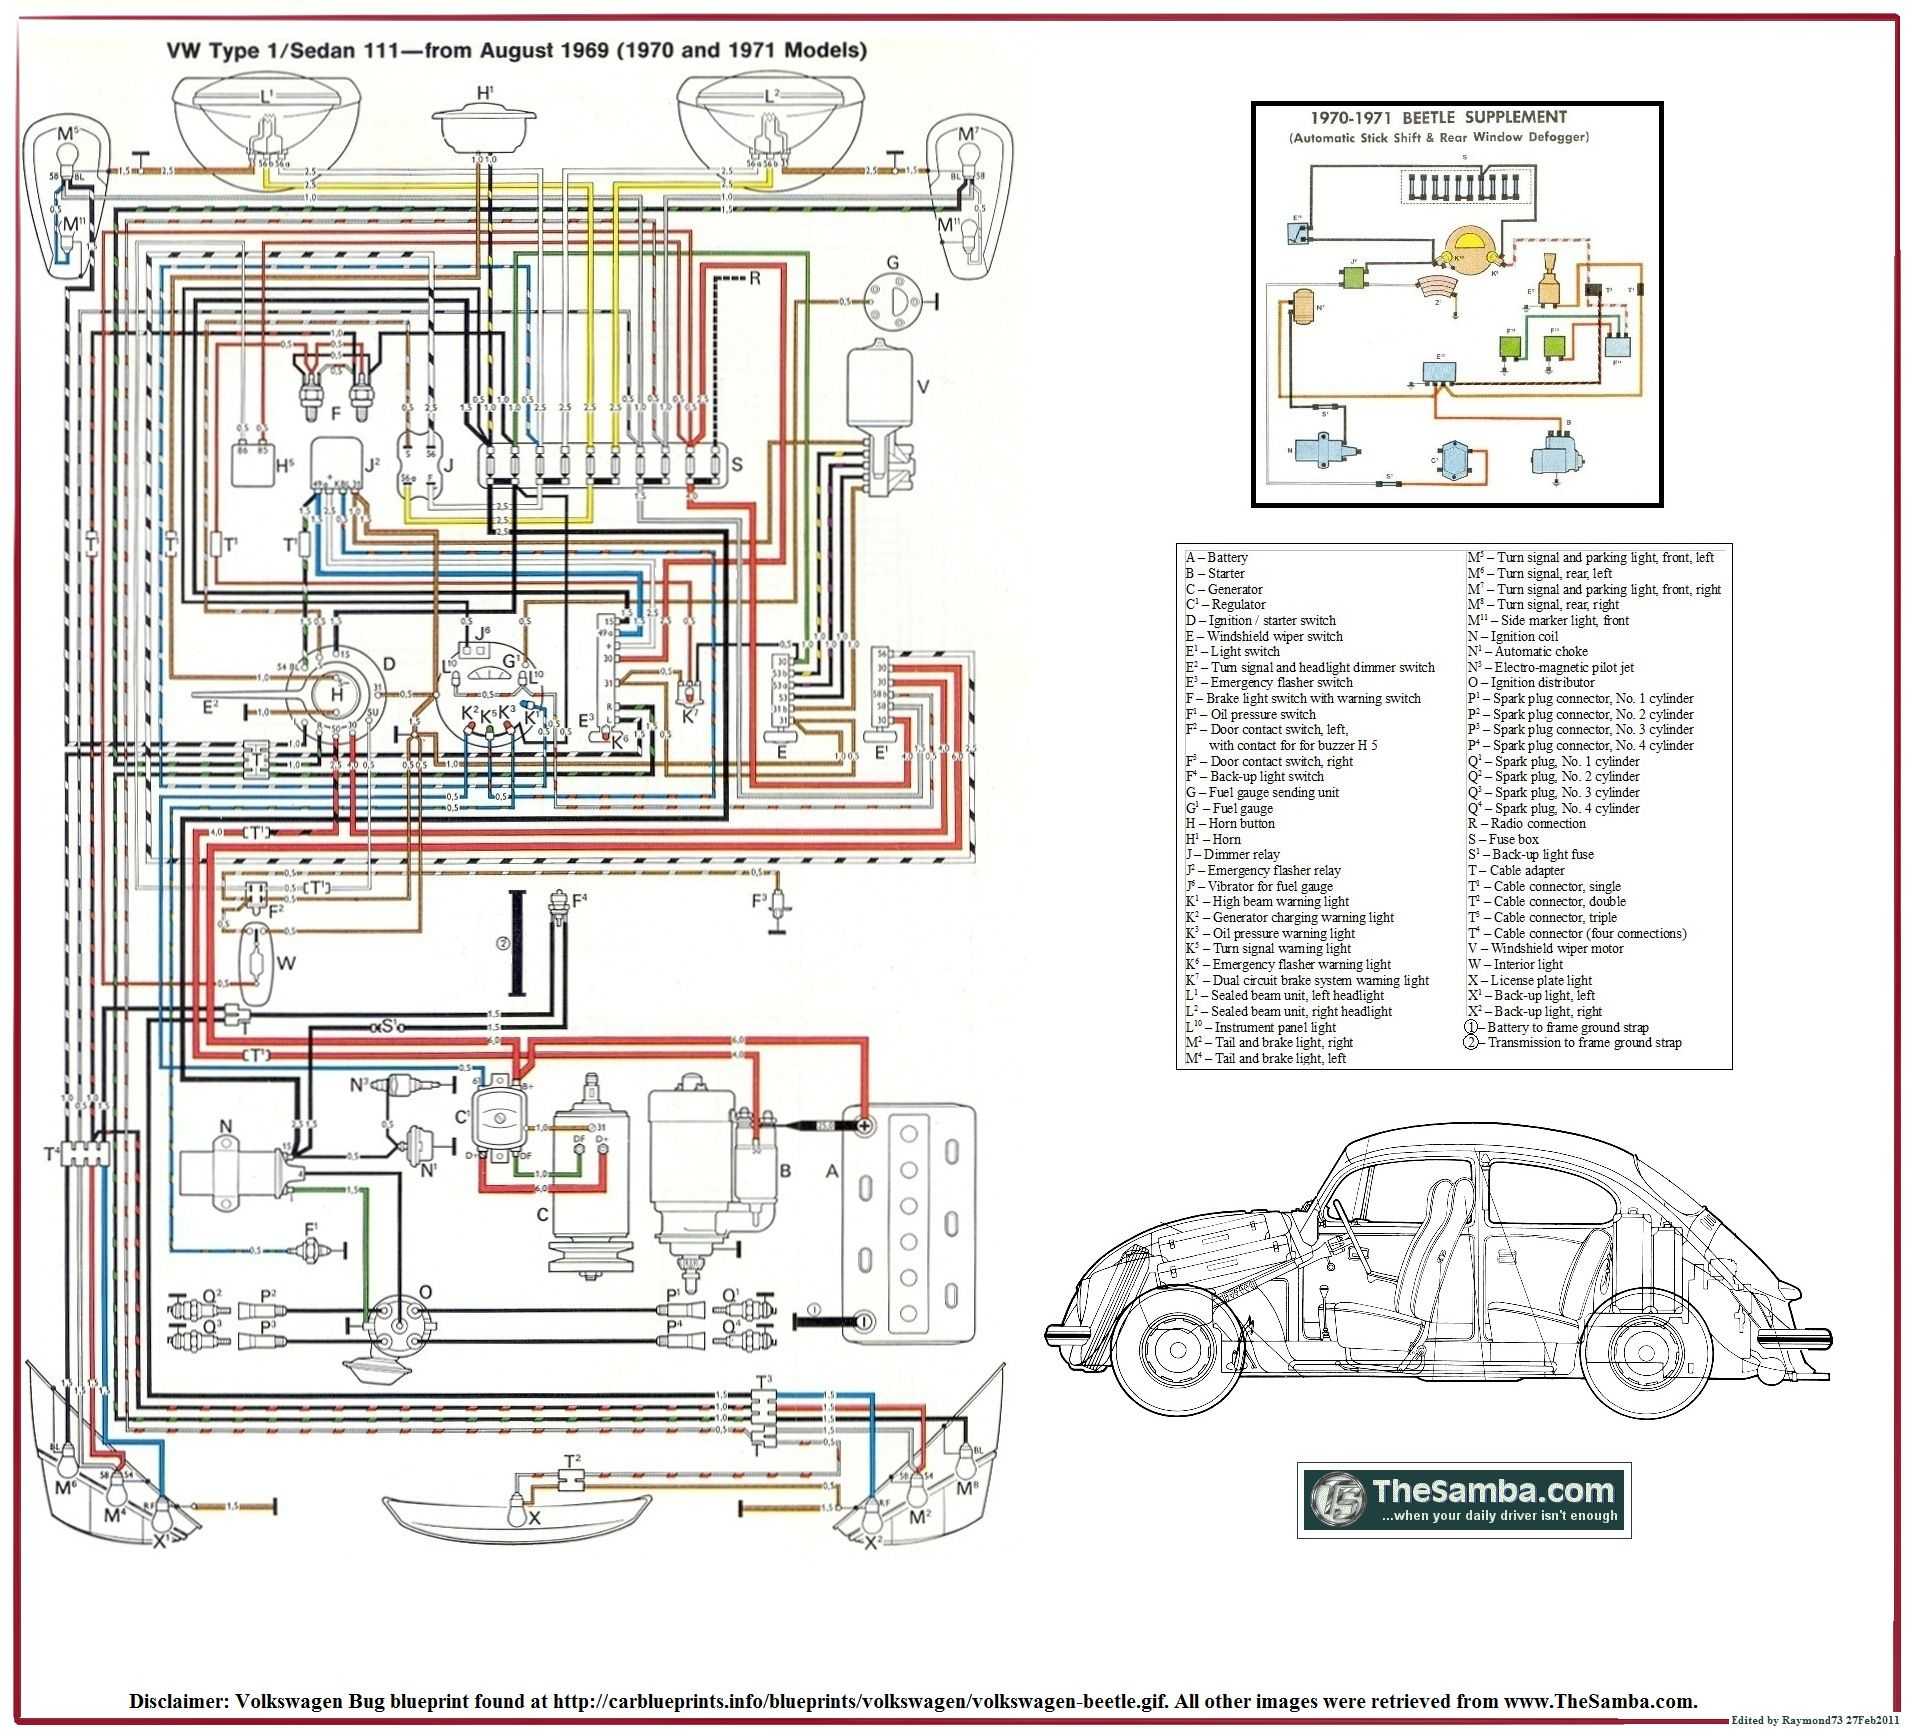 wiring diagram for 1971 vw bus the wiring diagram 71 vw bus wiring diagram nilza wiring diagram